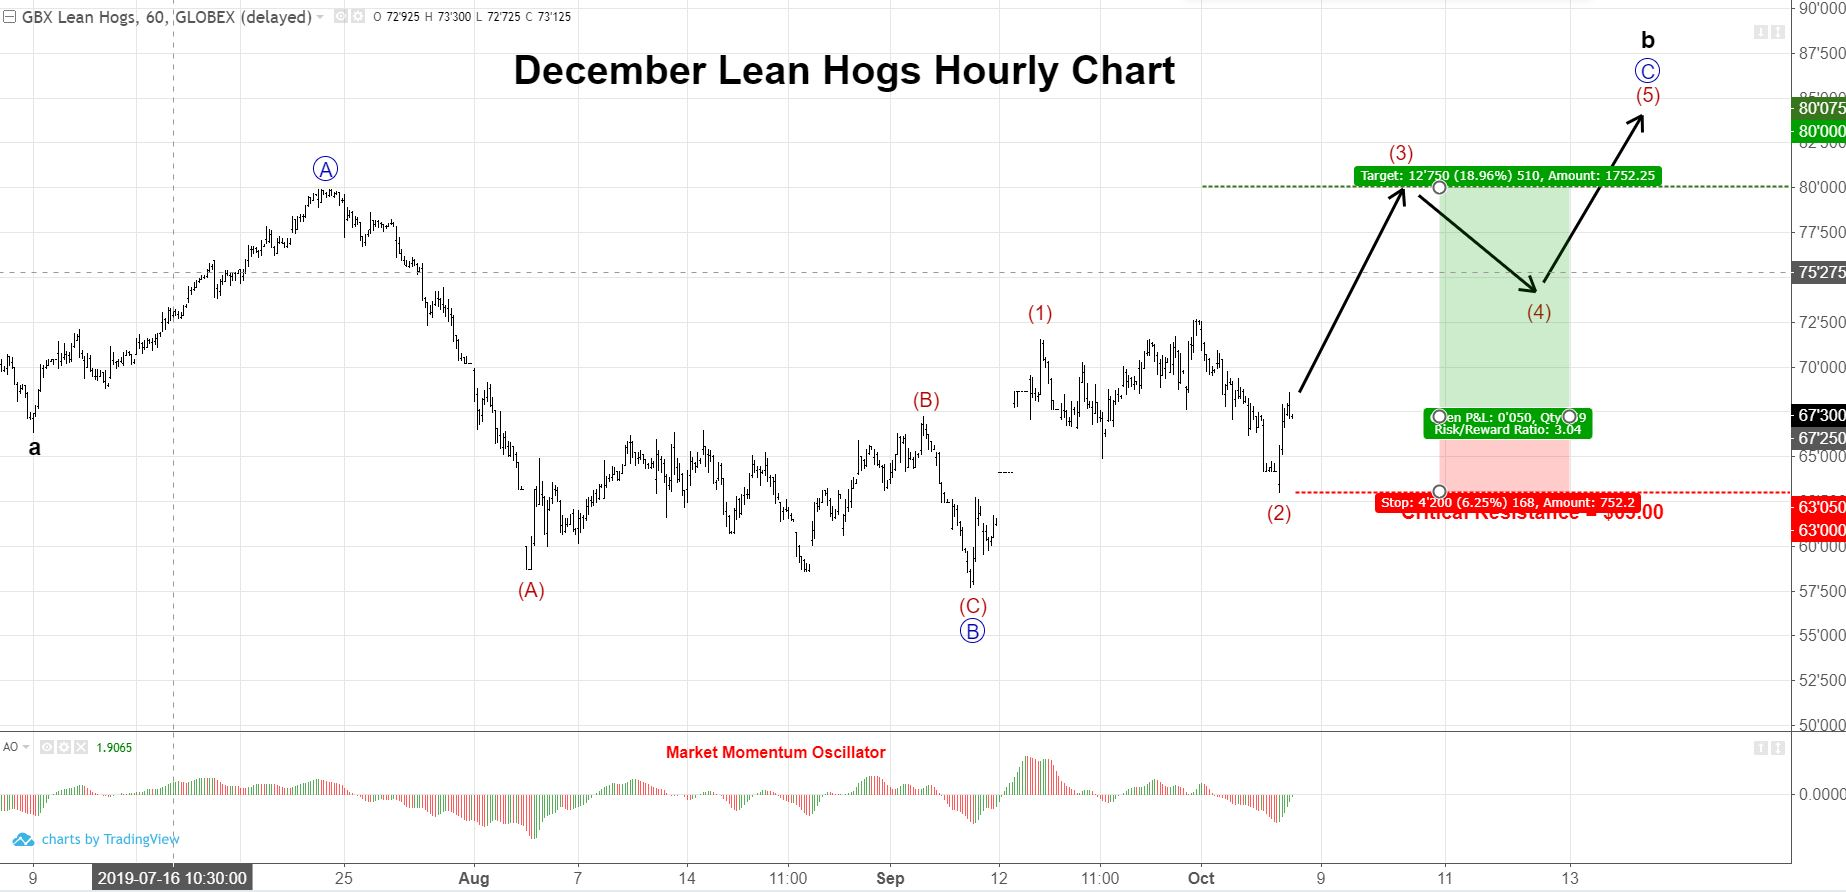 Lean Hog Futures Oulook